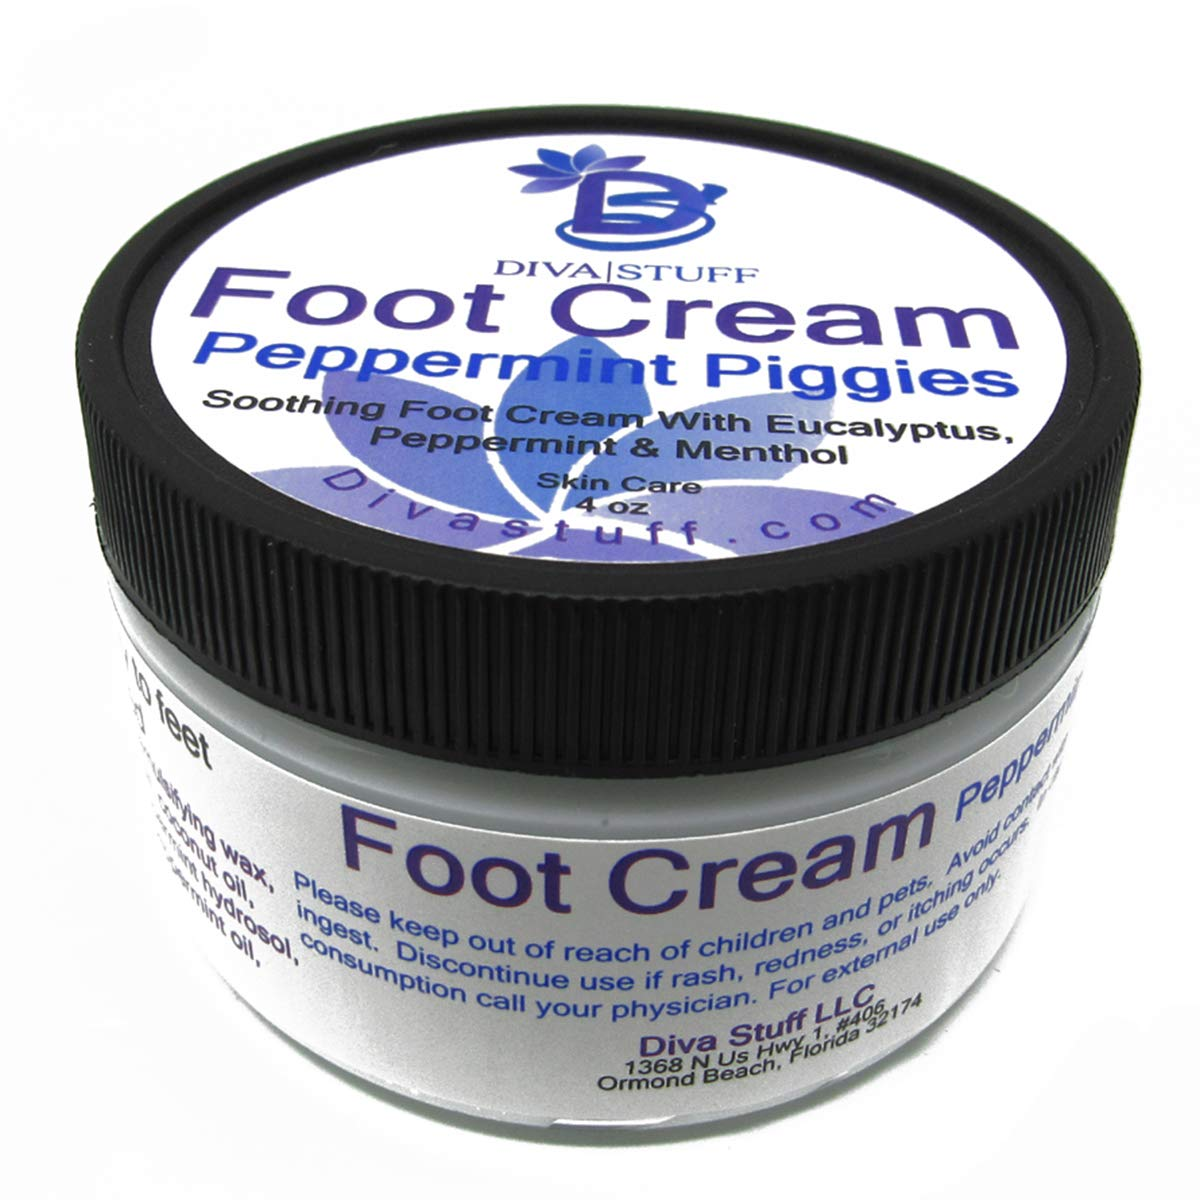 Peppermint Piggies Soothing Foot Cream w/Eucalyptus, Peppermint & Menthol, by Diva Stuff